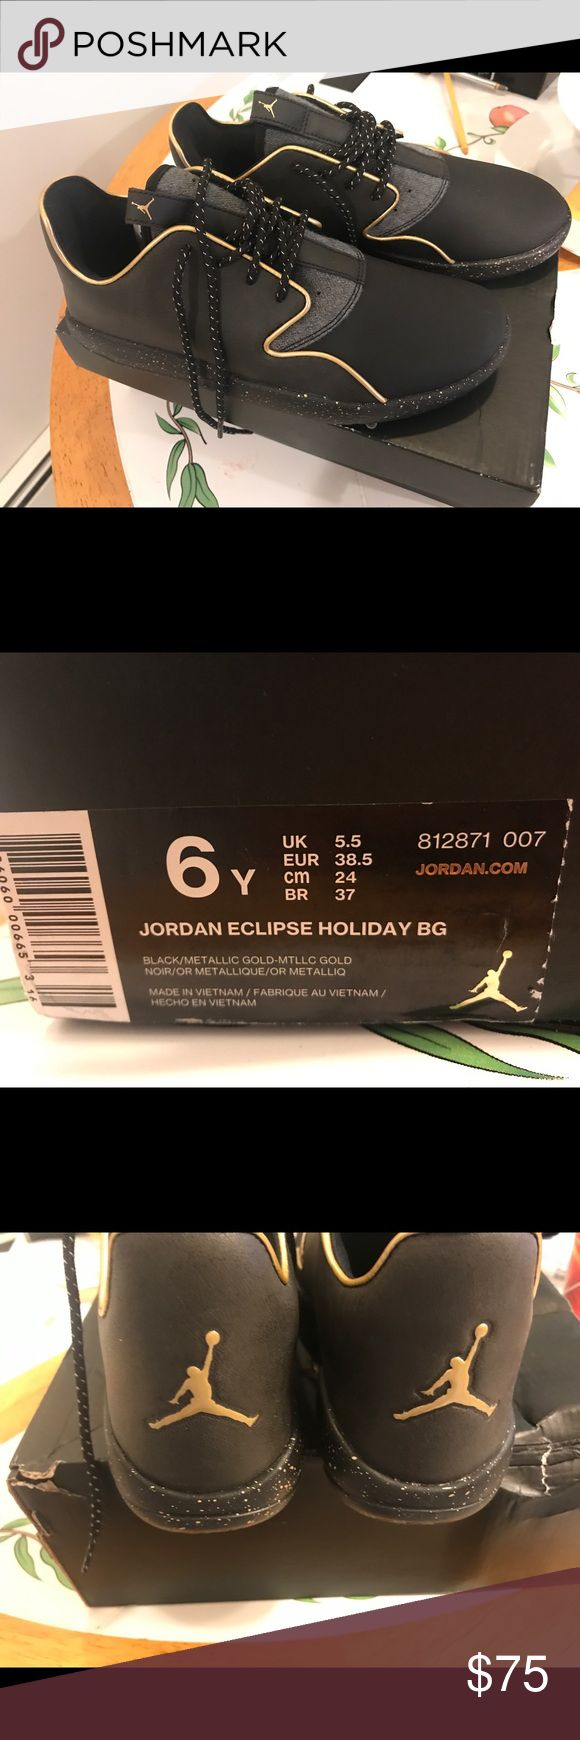 JORDAN ECLIPSE HOLIDAY BG, Size 6youth Black and metallic gold details,NEVER WORN, box included Jordan Shoes Athletic Shoes